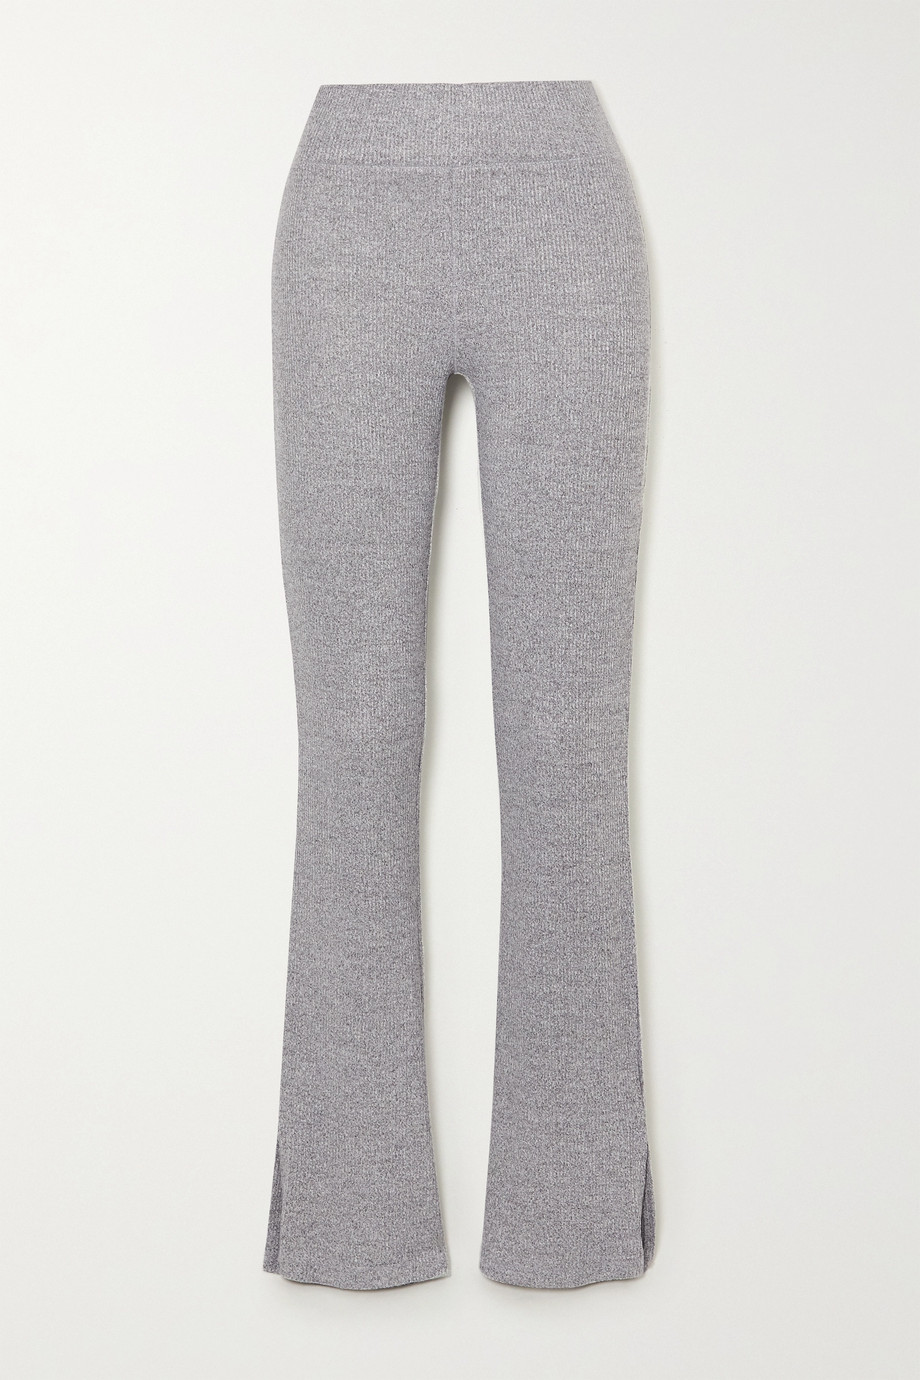 rag & bone Ribbed mélange stretch-knit flared pants